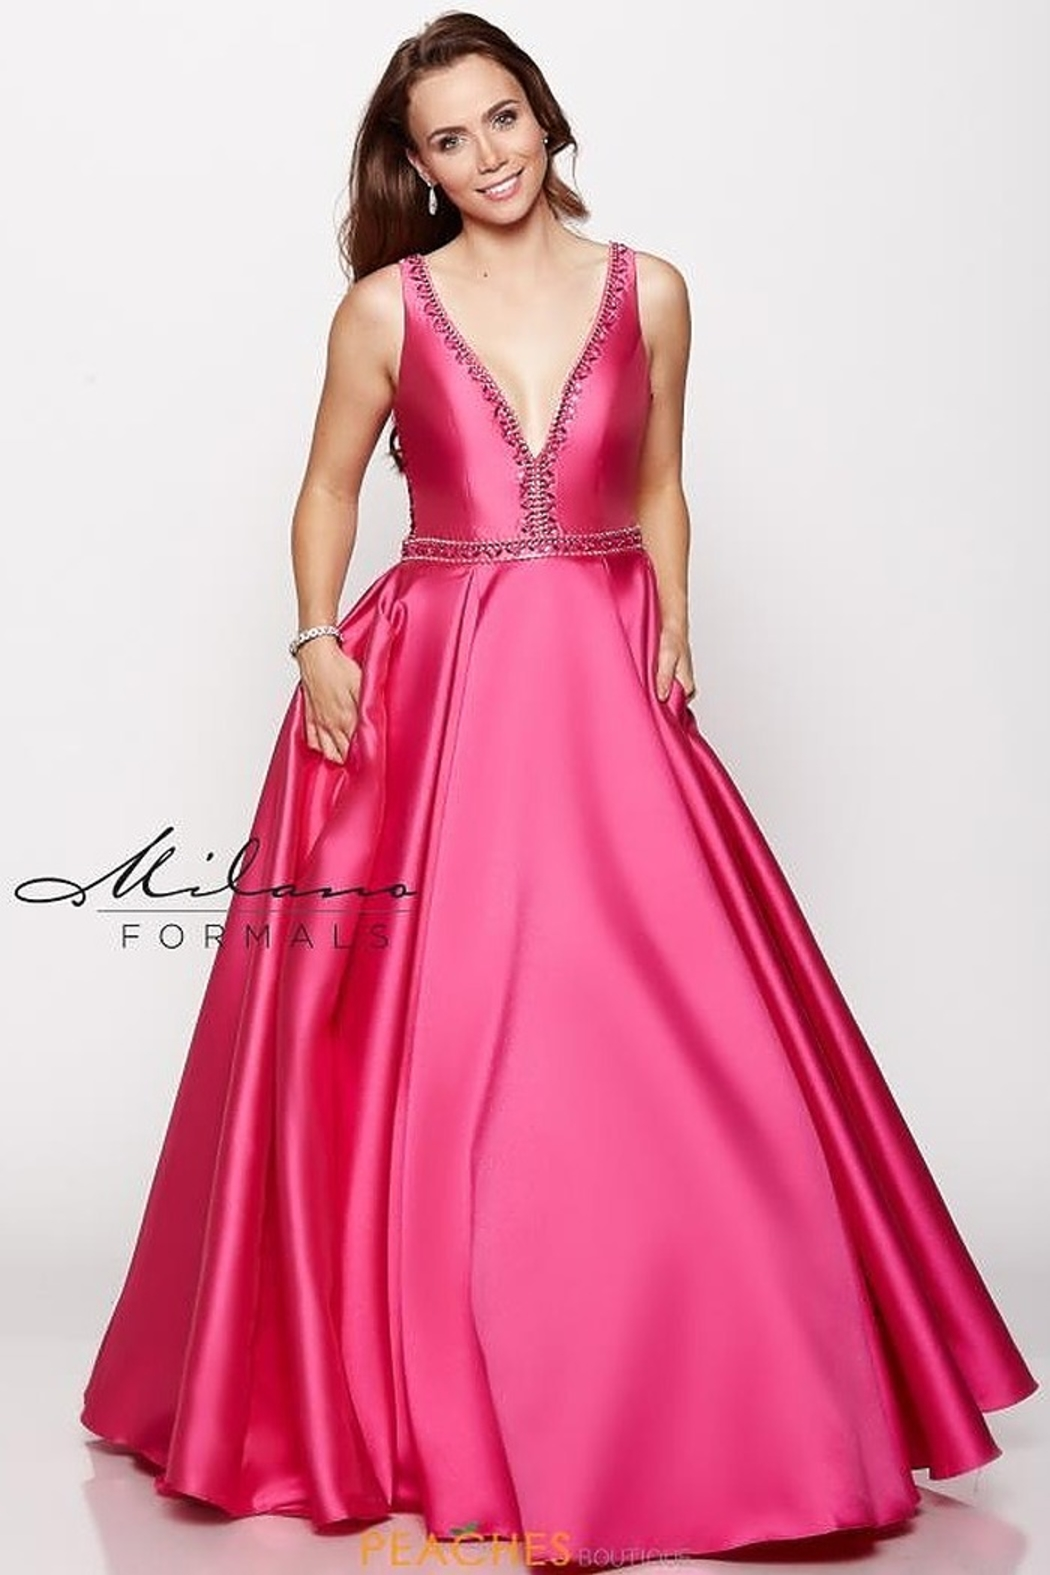 Milano Formals E2165 - Dress - Front Cropped Image